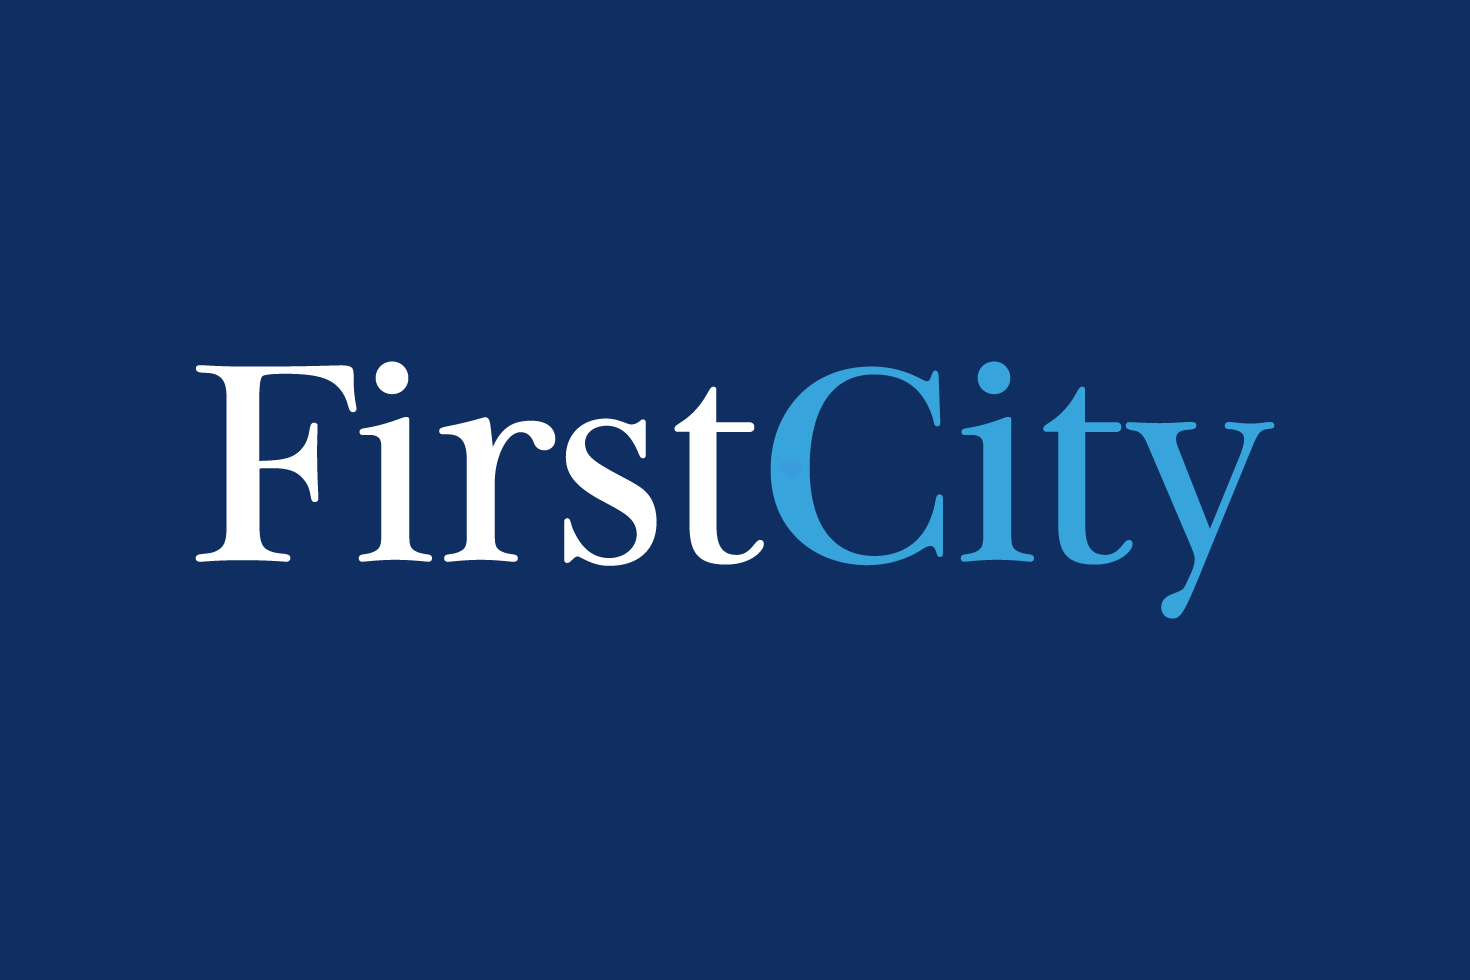 First City logo